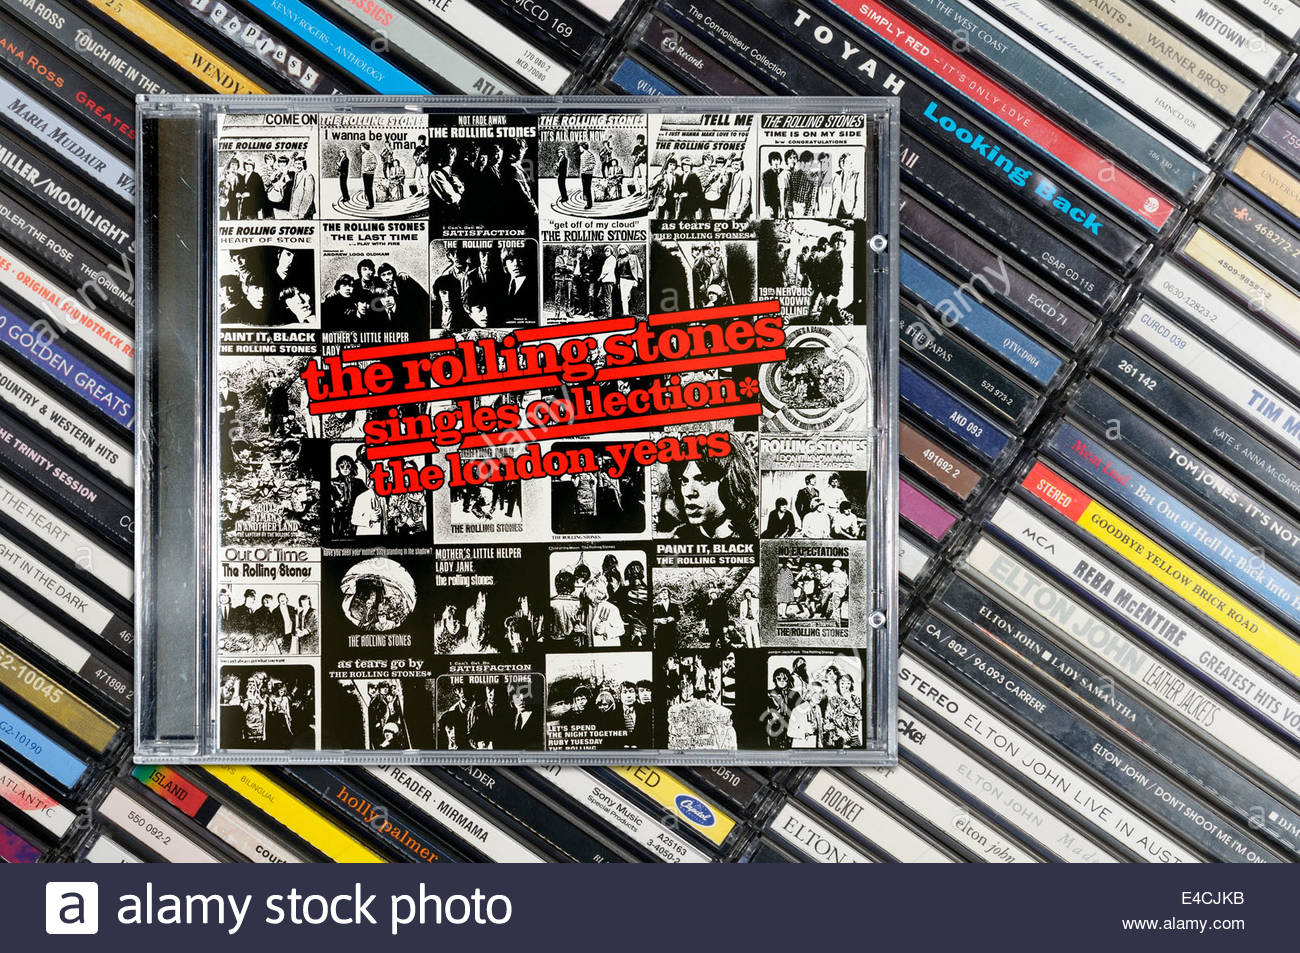 Album Cover Rolling Stones Stock Photos Amp Album Cover